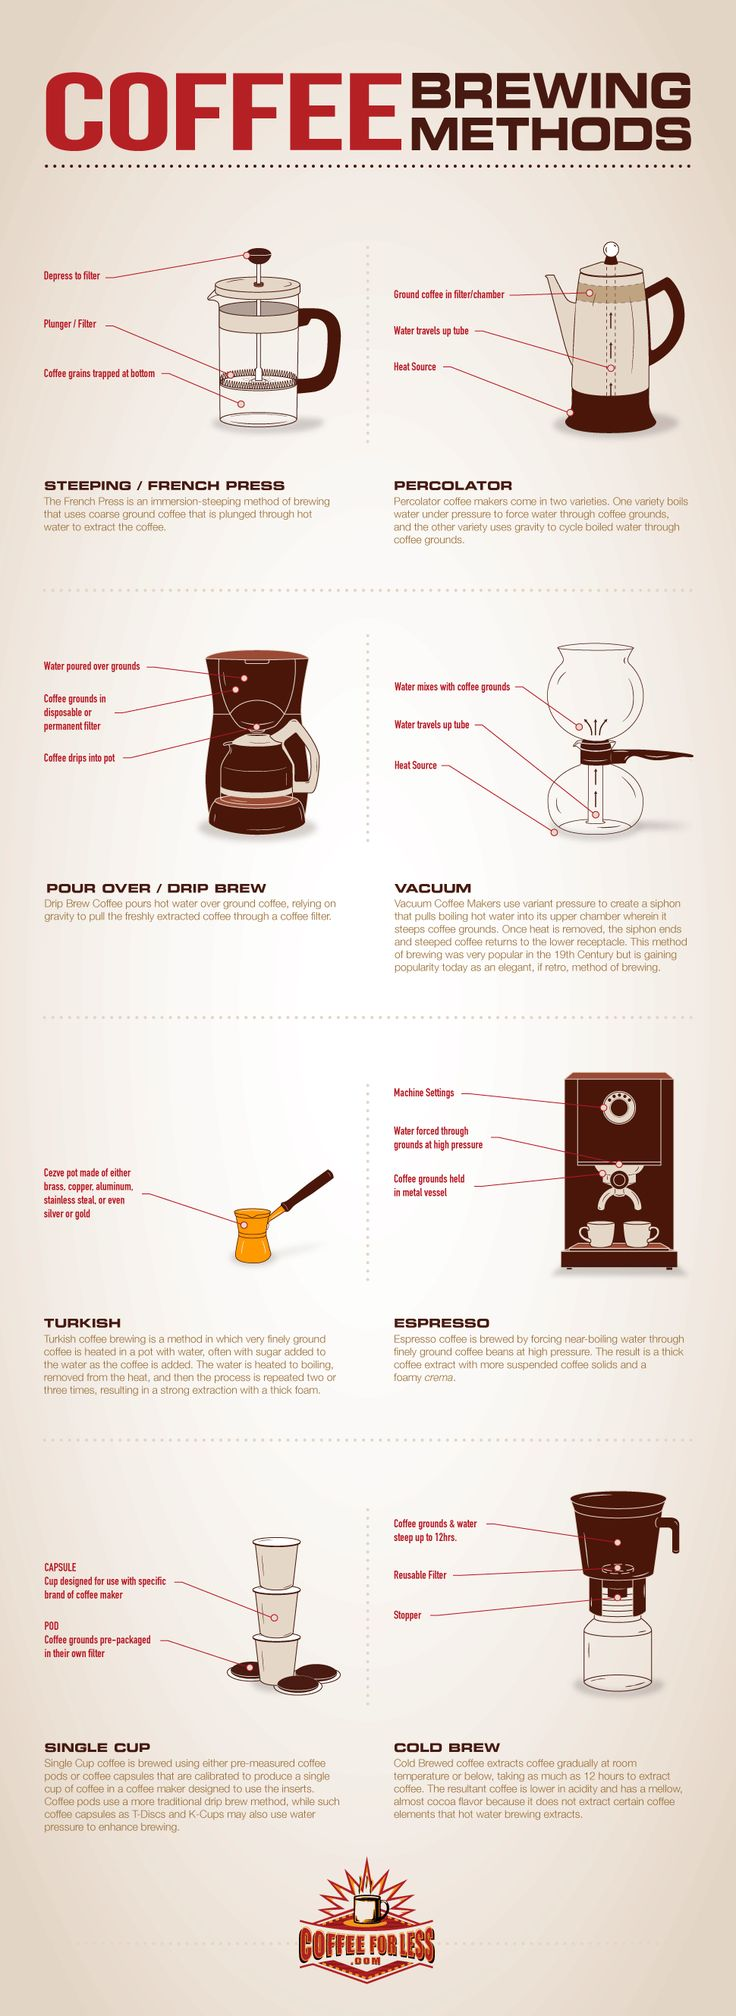 Coffee brewing methods #infographic